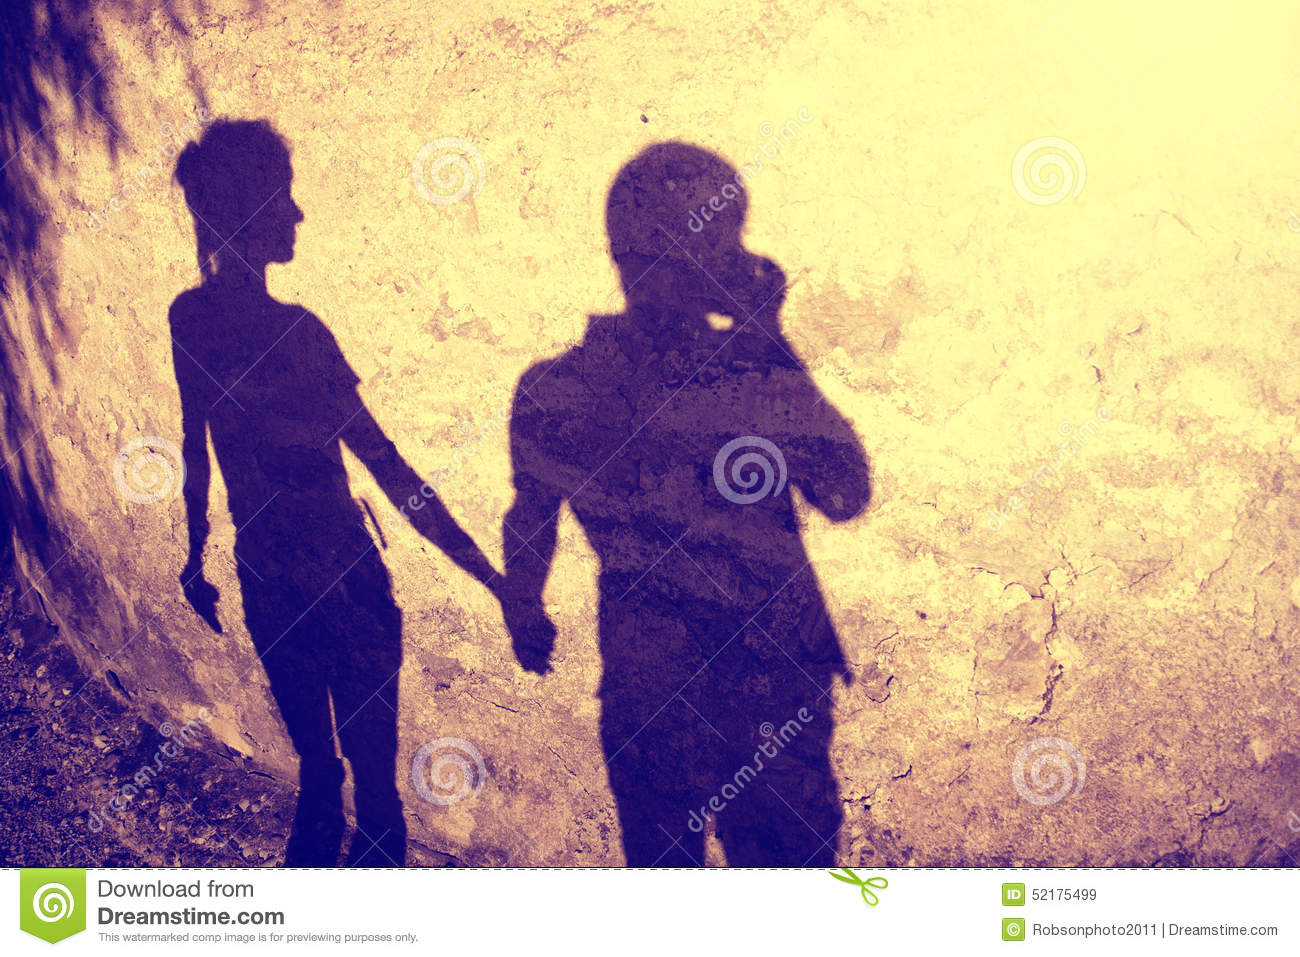 Vintage Silhouette Of Two People Holding Hands Stock Image - Image ... 072b885c3f